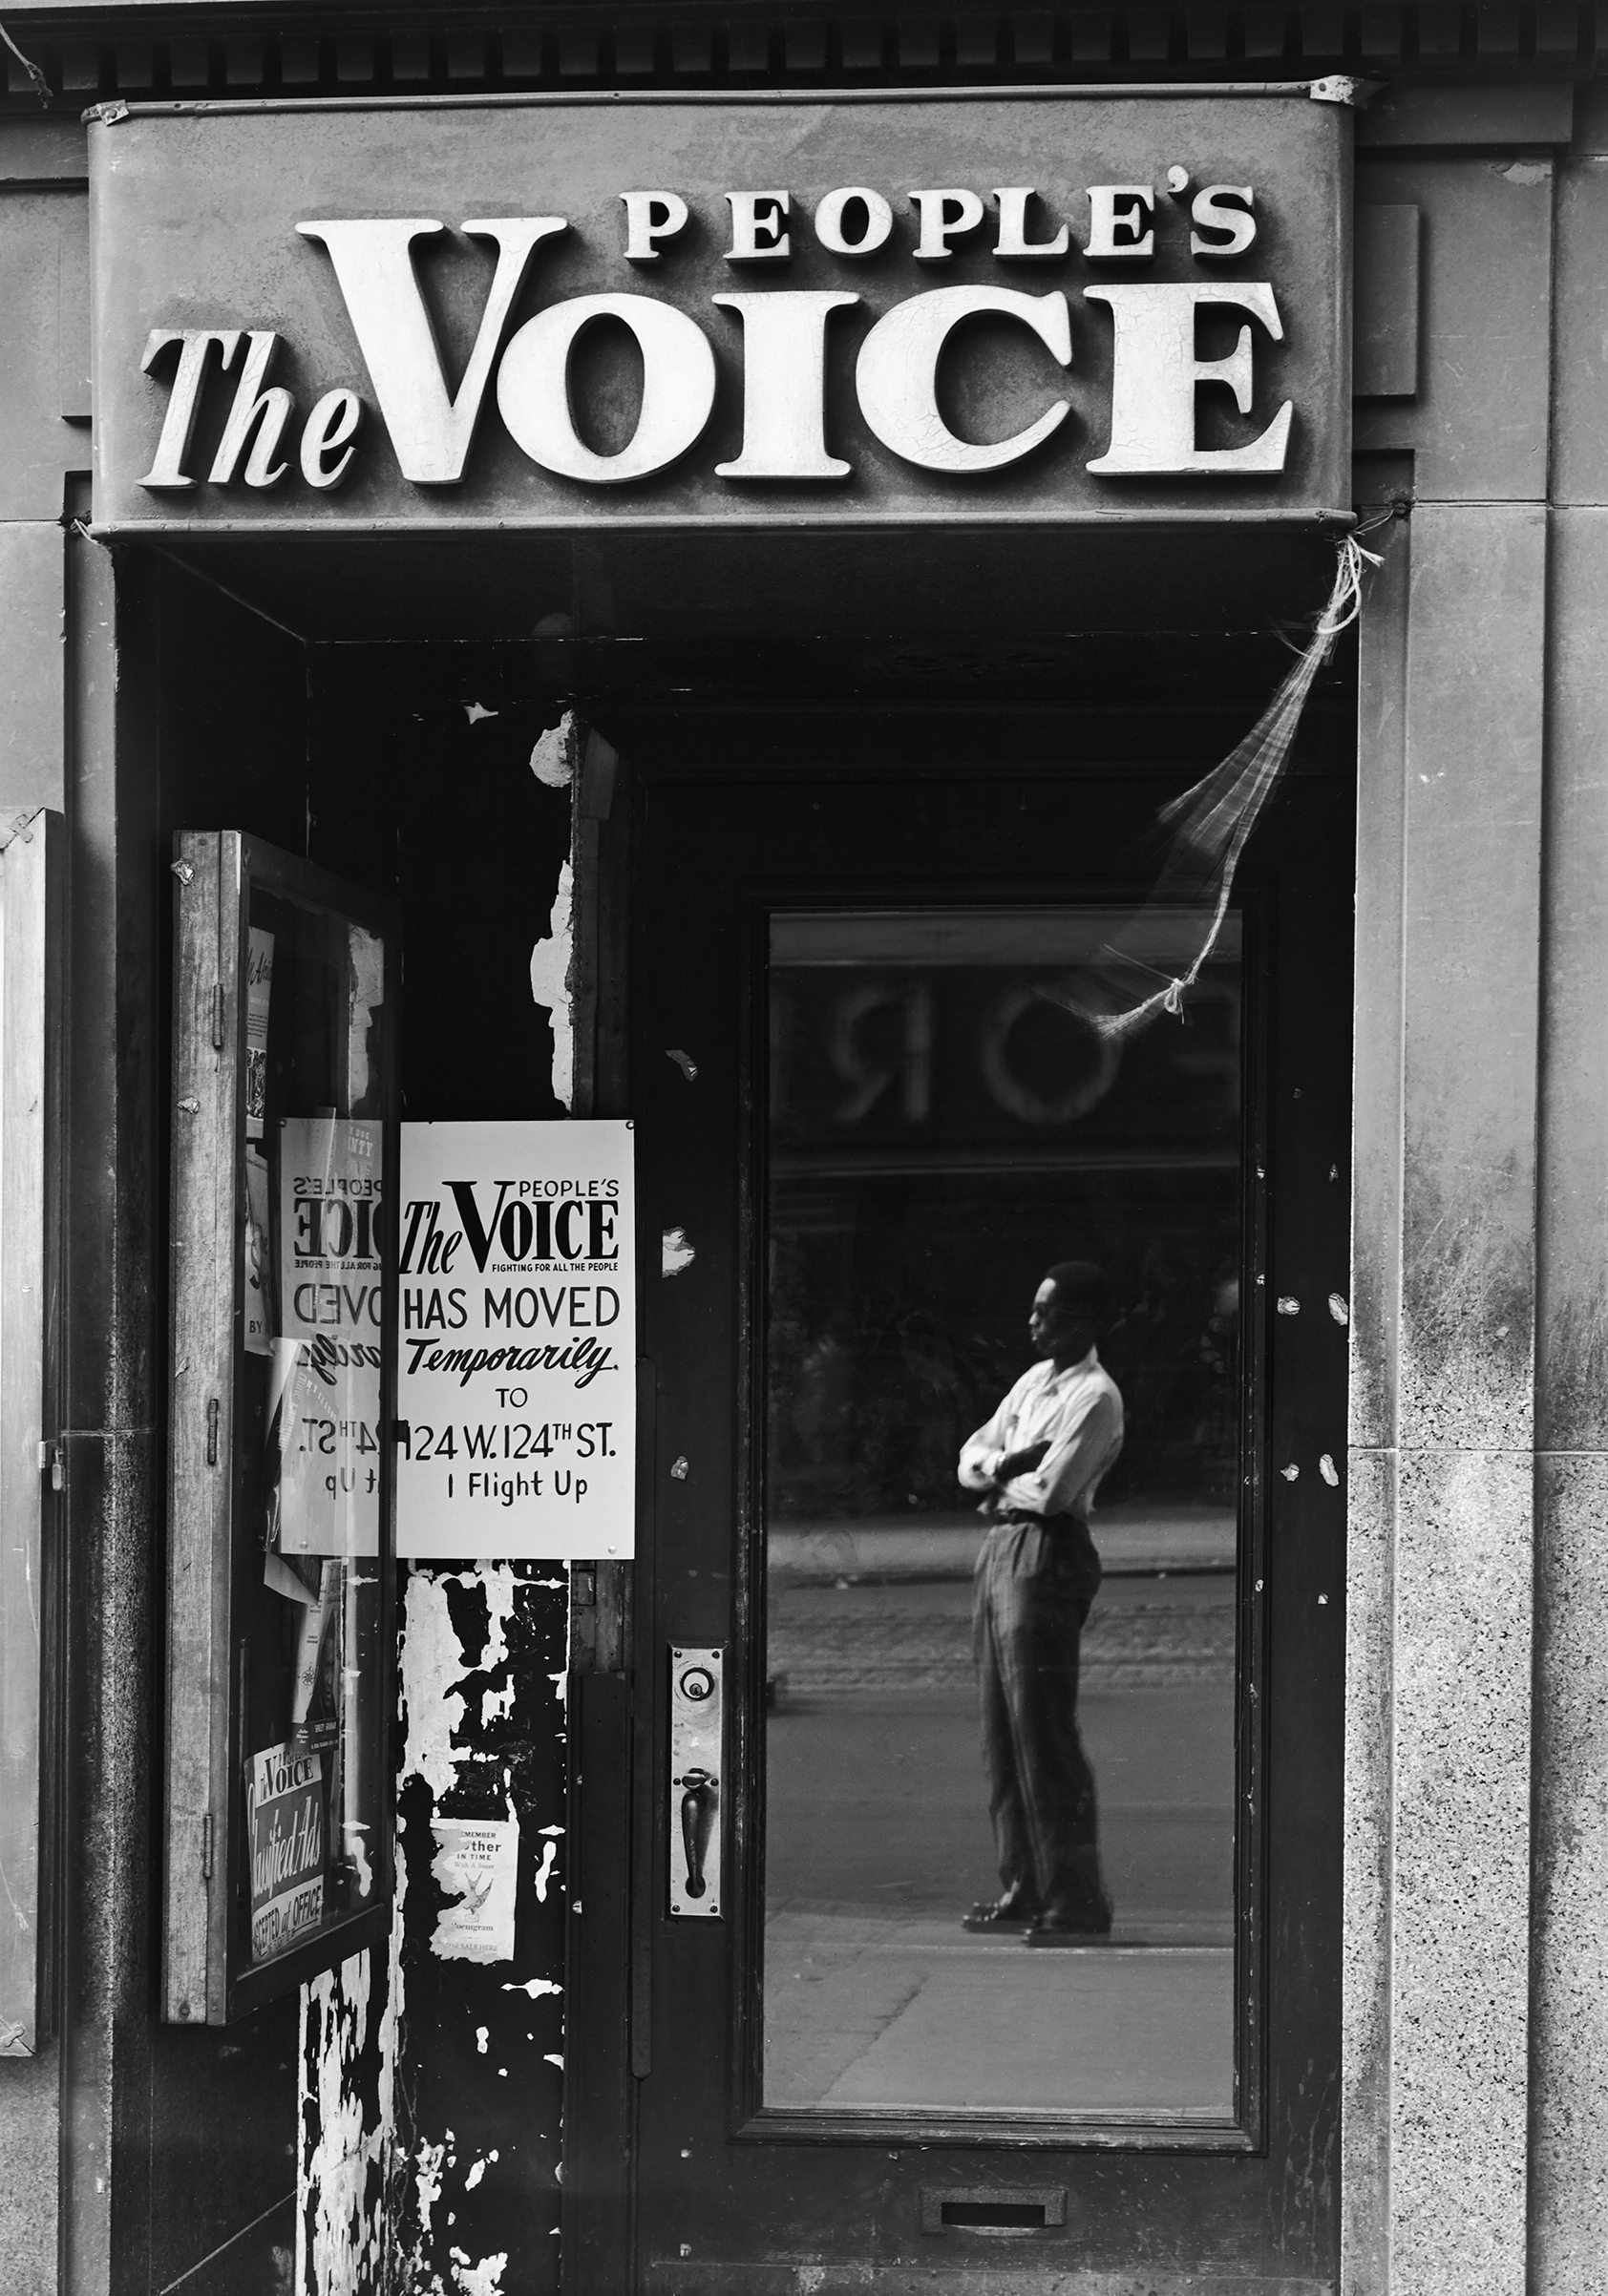 The People's Voice,  125th Street, 1946.